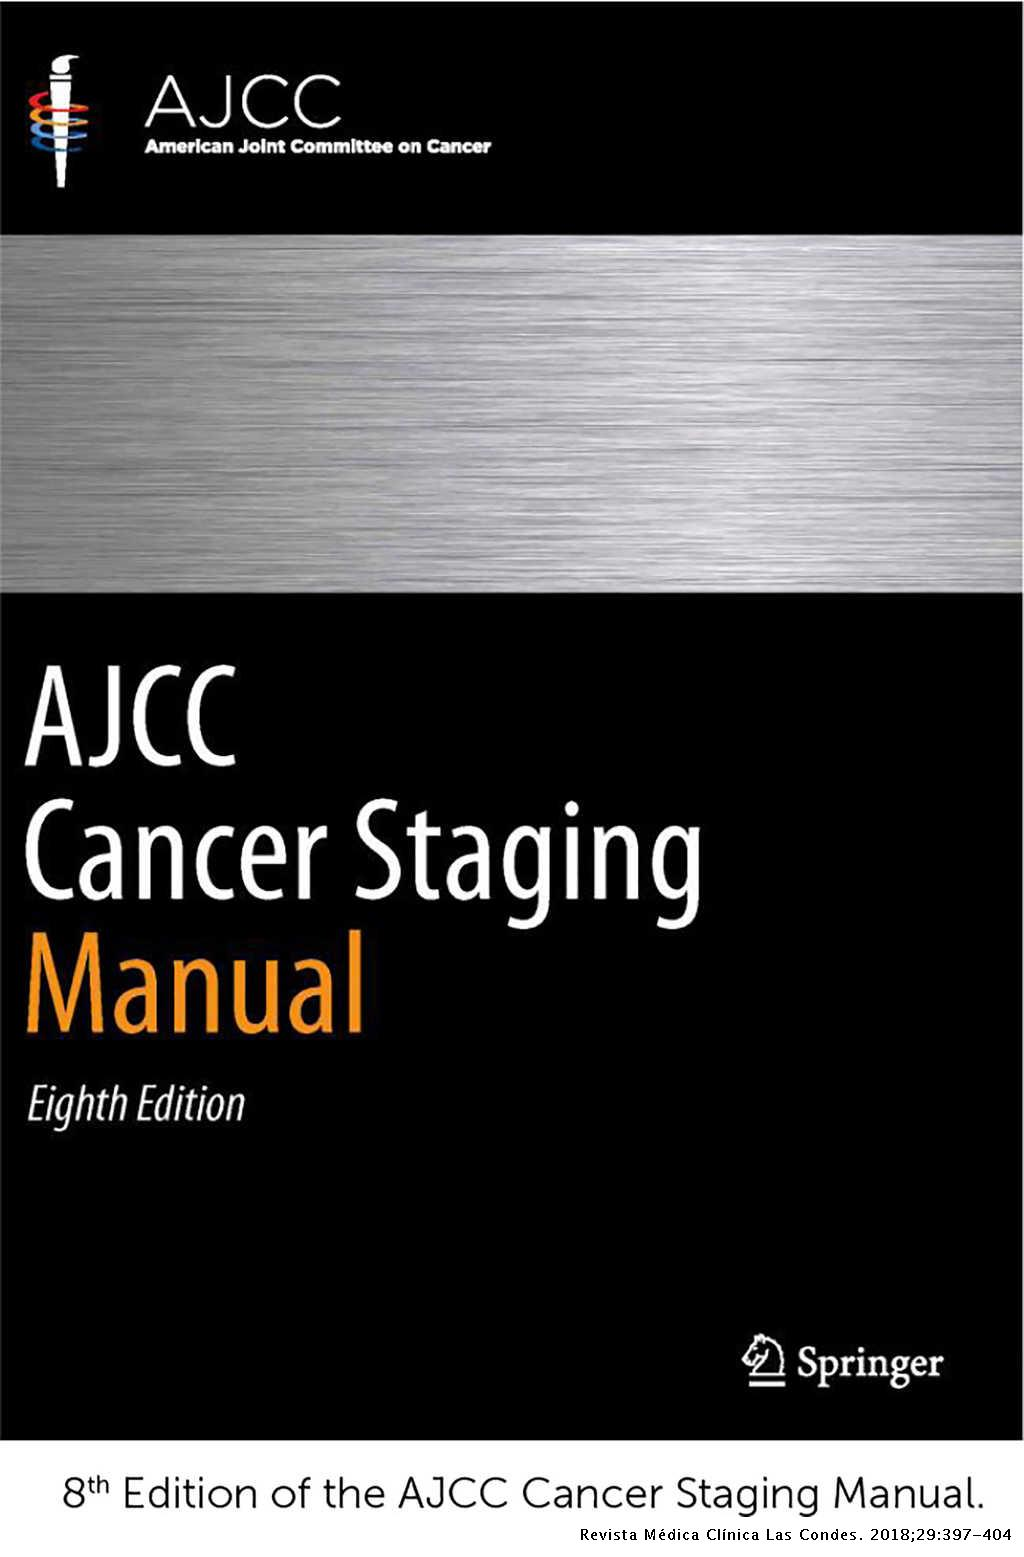 New Ajcc Uicc Staging System For Head And Neck And Thyroid Cancer Revista Medica Clinica Las Condes